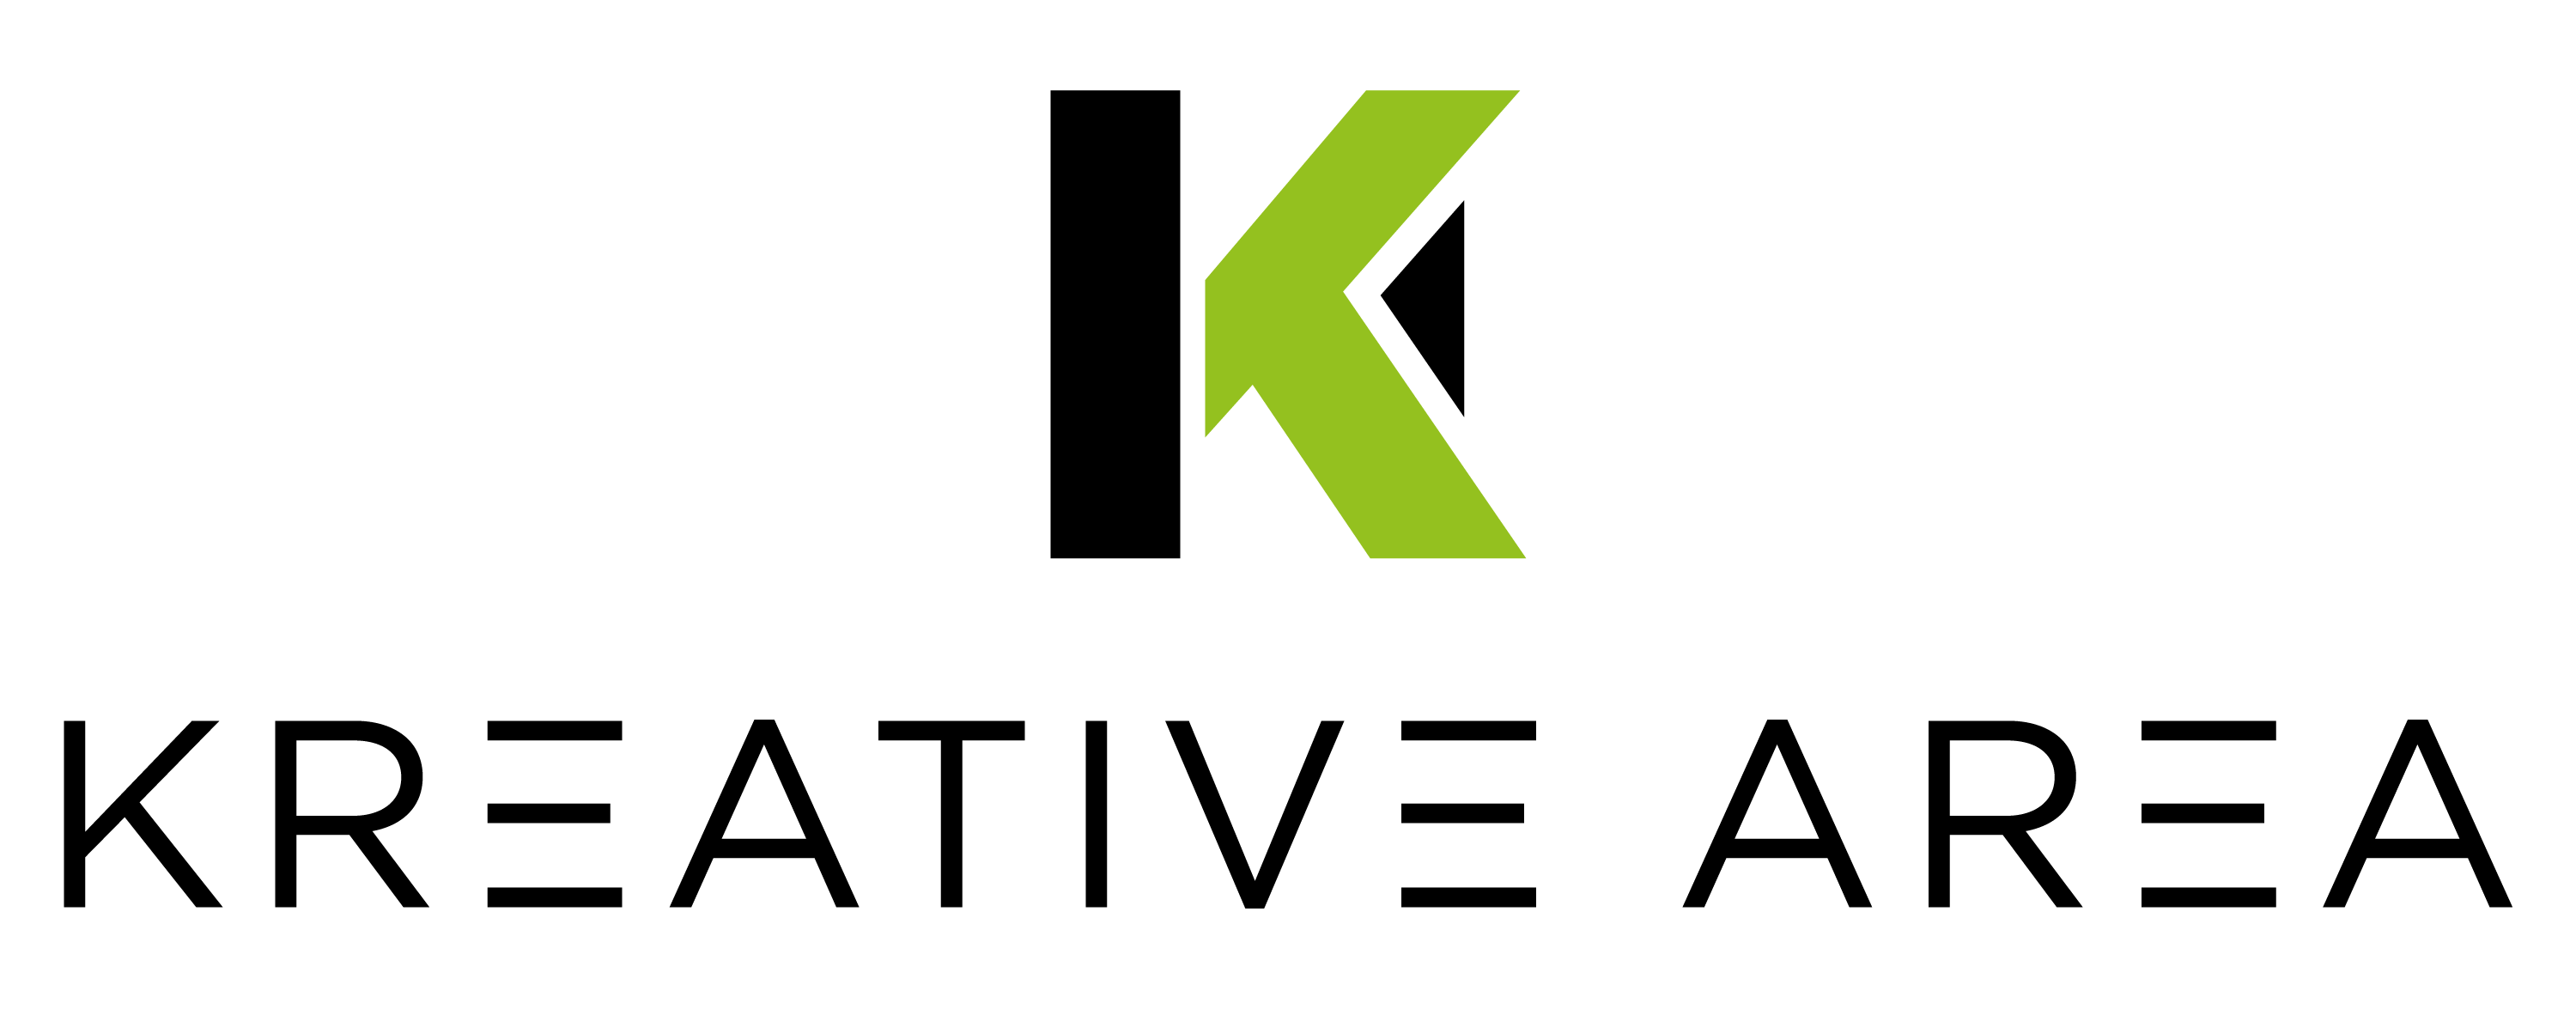 kreativearea web & graphic design logo